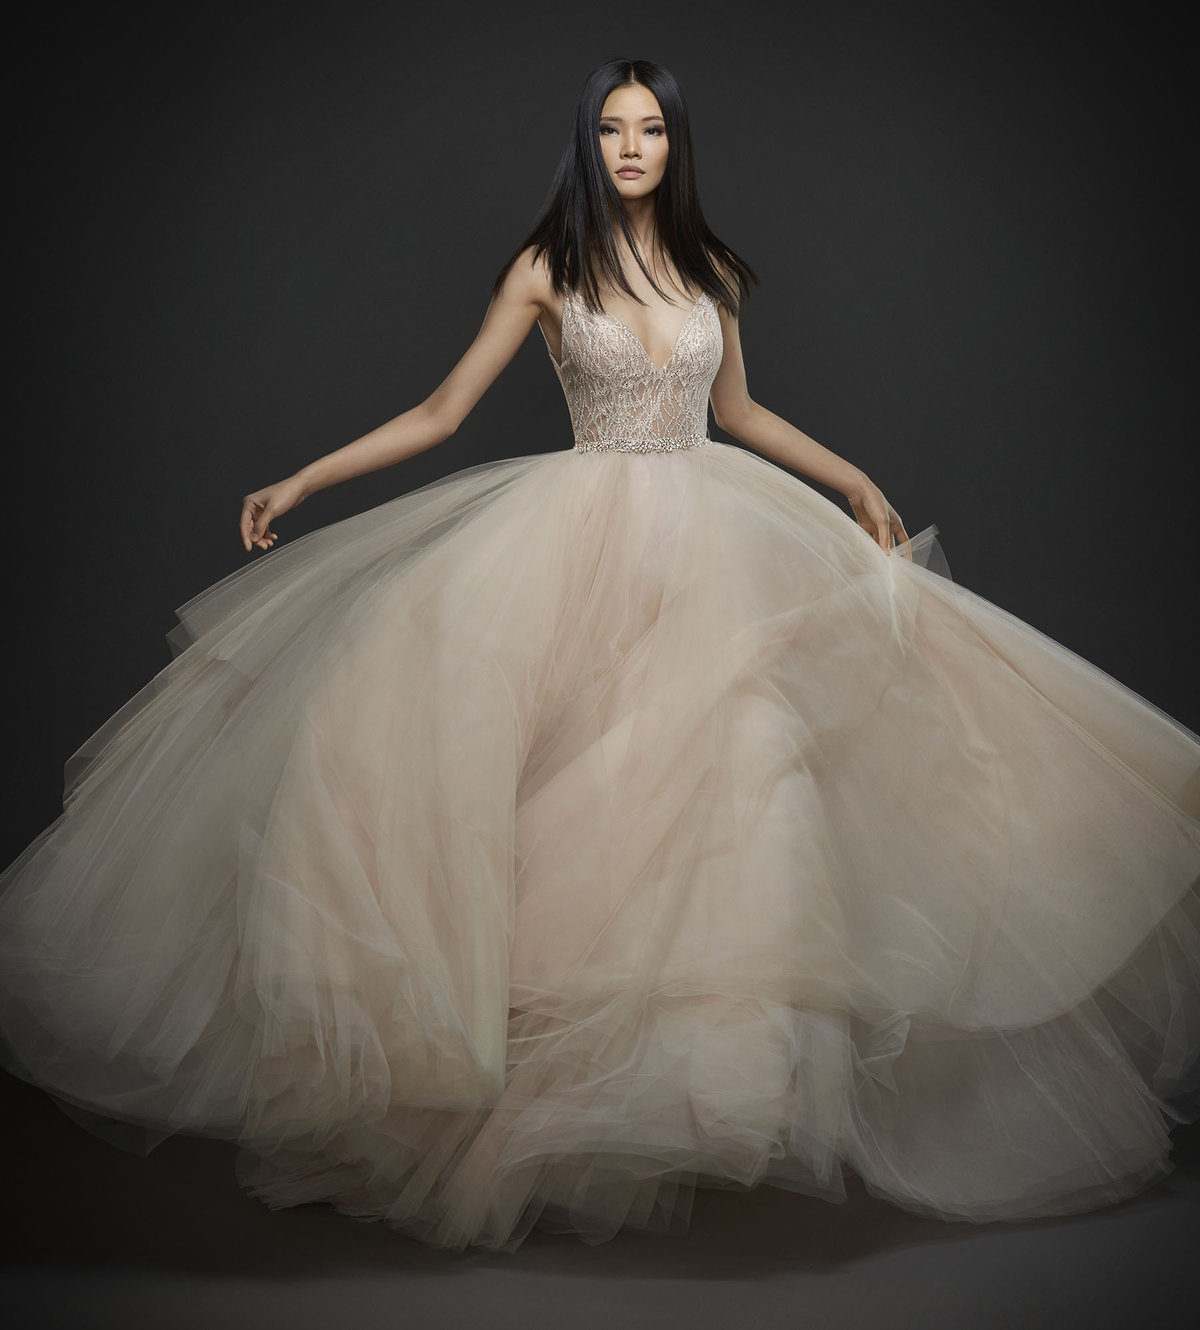 Wedding Gown Dress: Bridal Gowns And Wedding Dresses By JLM Couture